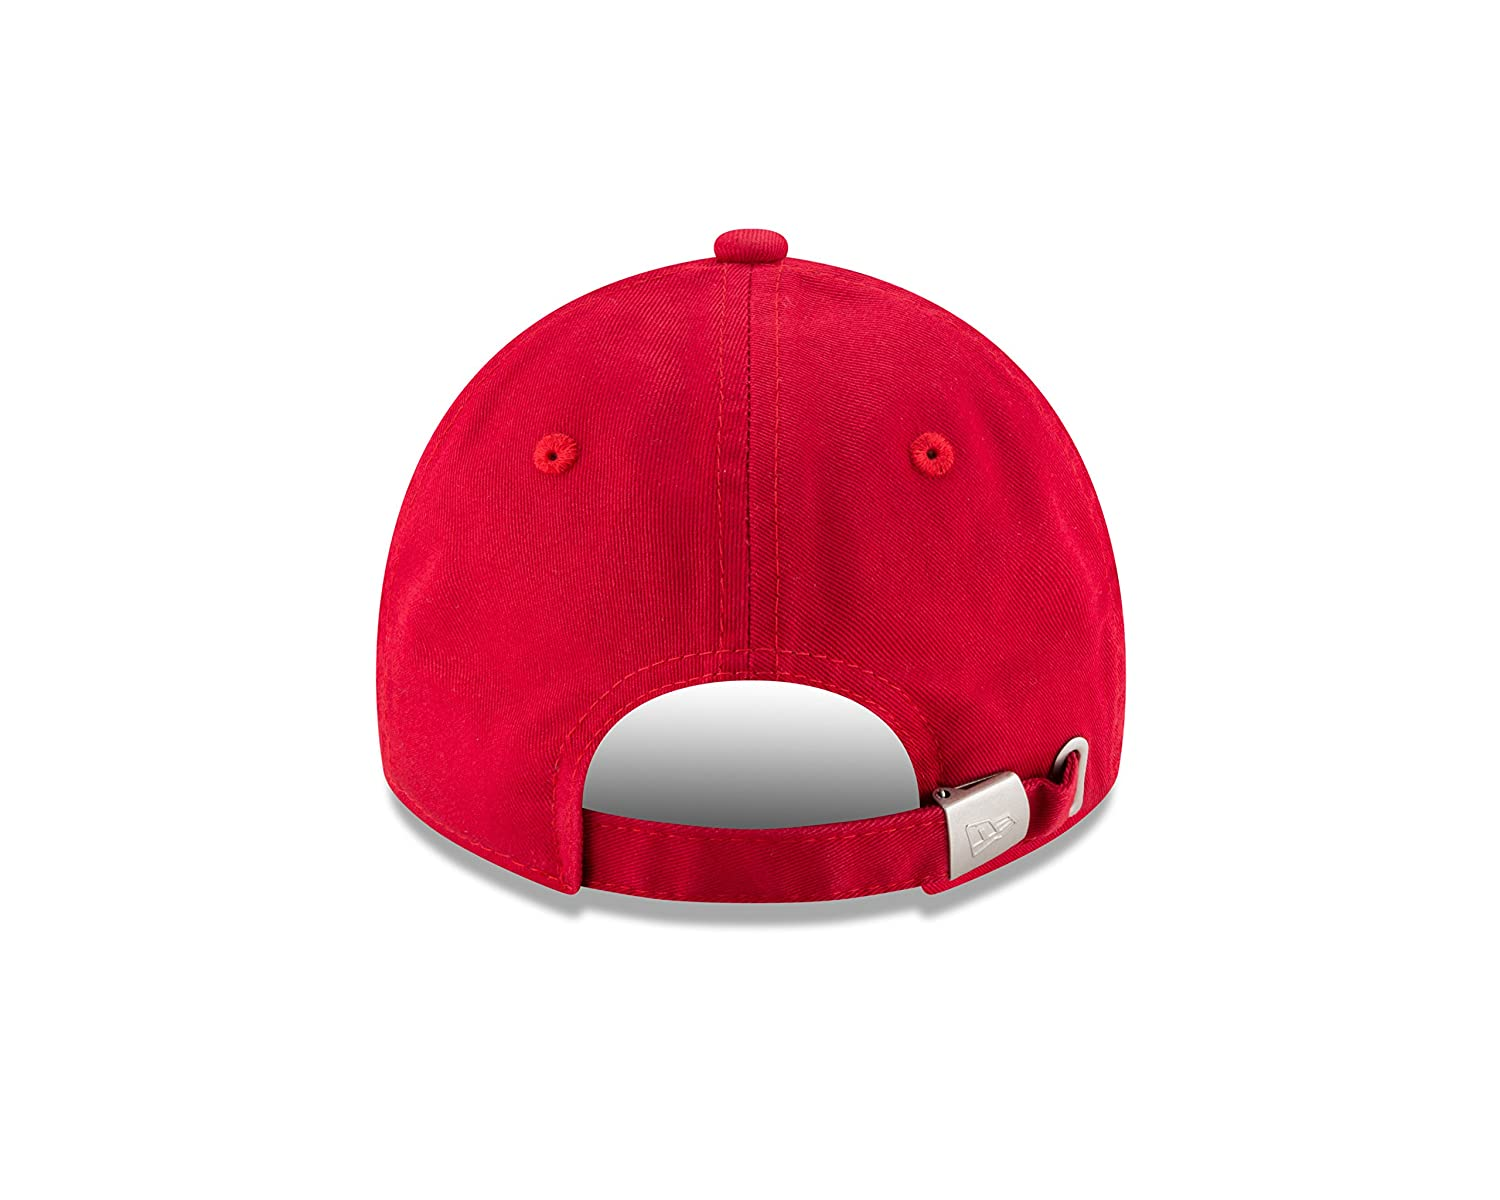 online store 21fa4 8fa22 Amazon.com   New Era NHL Detroit Red Wings Women s Team Glisten 9TWENTY Cap,  One Size, Red   Sports   Outdoors